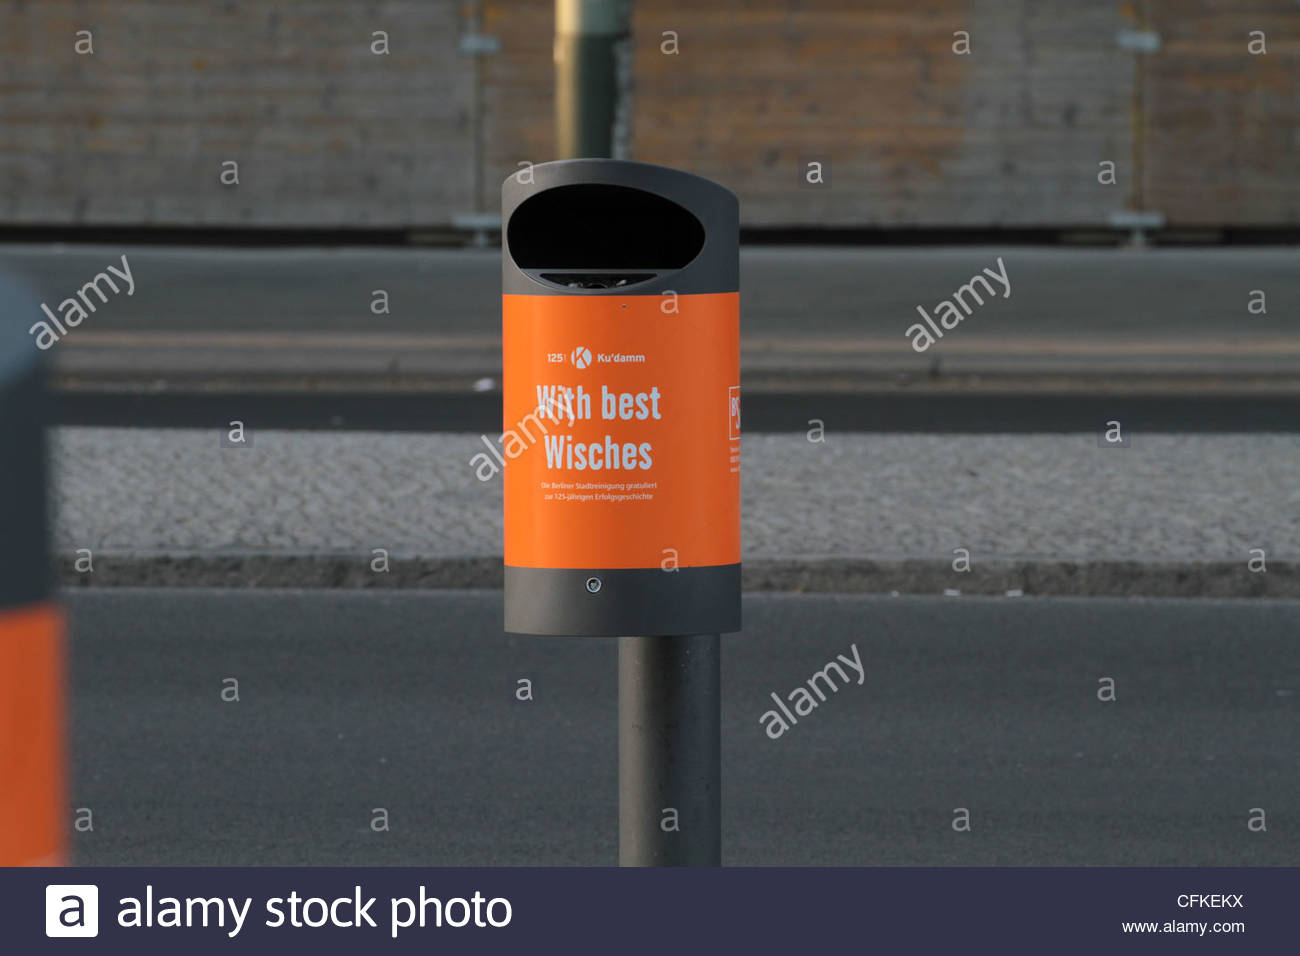 With best Wishes - Stock Image